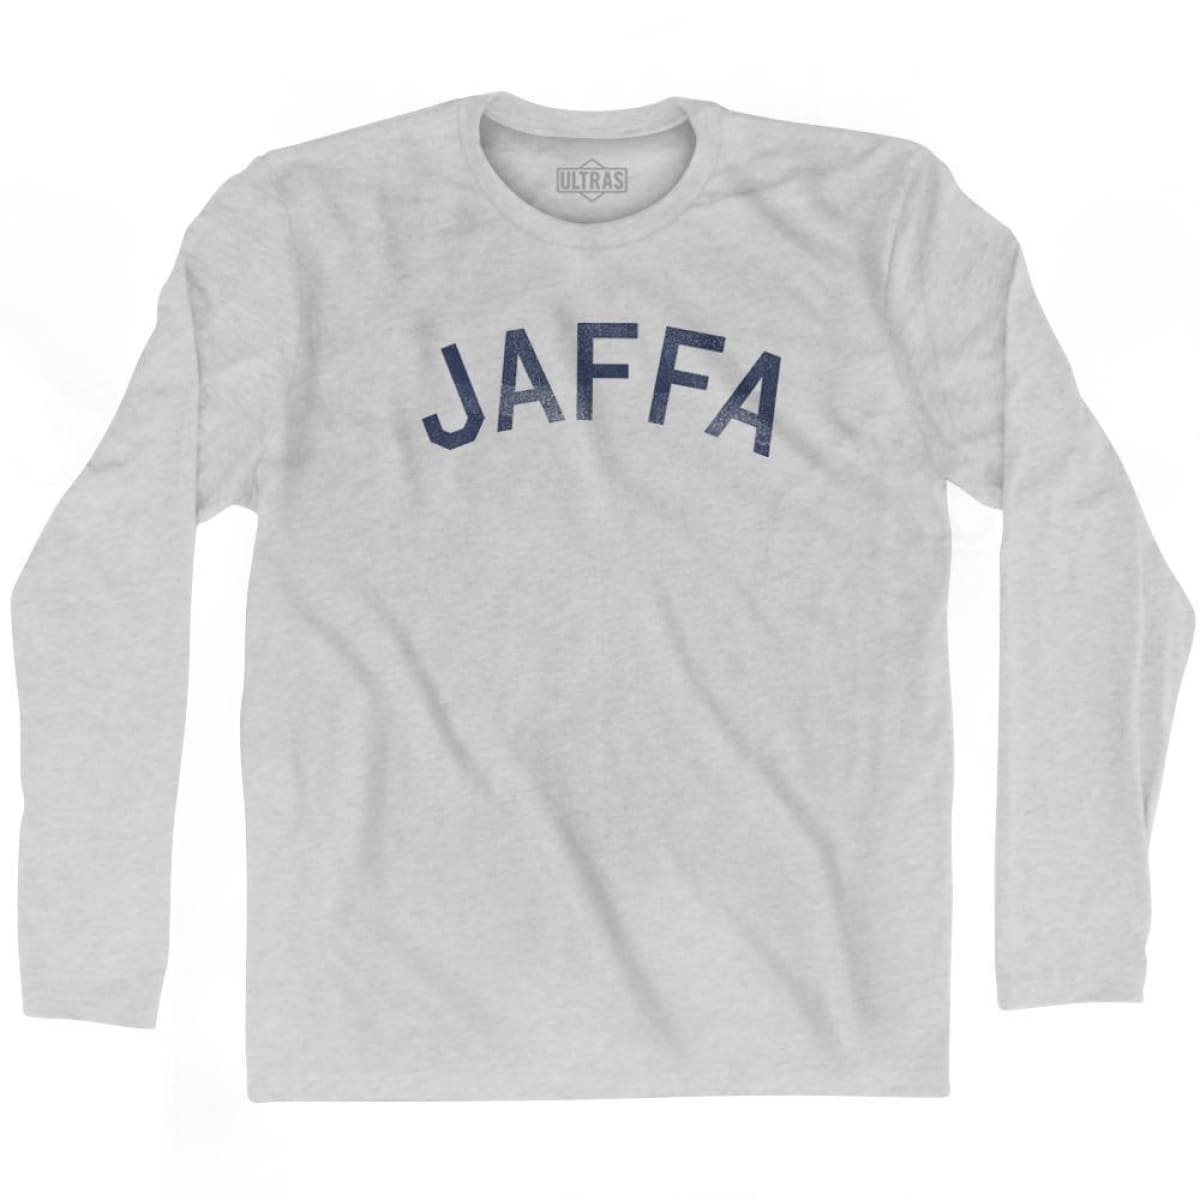 Jaffa Vintage City Adult Cotton Long Sleeve T-shirt - Grey Heather / Adult Small - Asian Vintage City